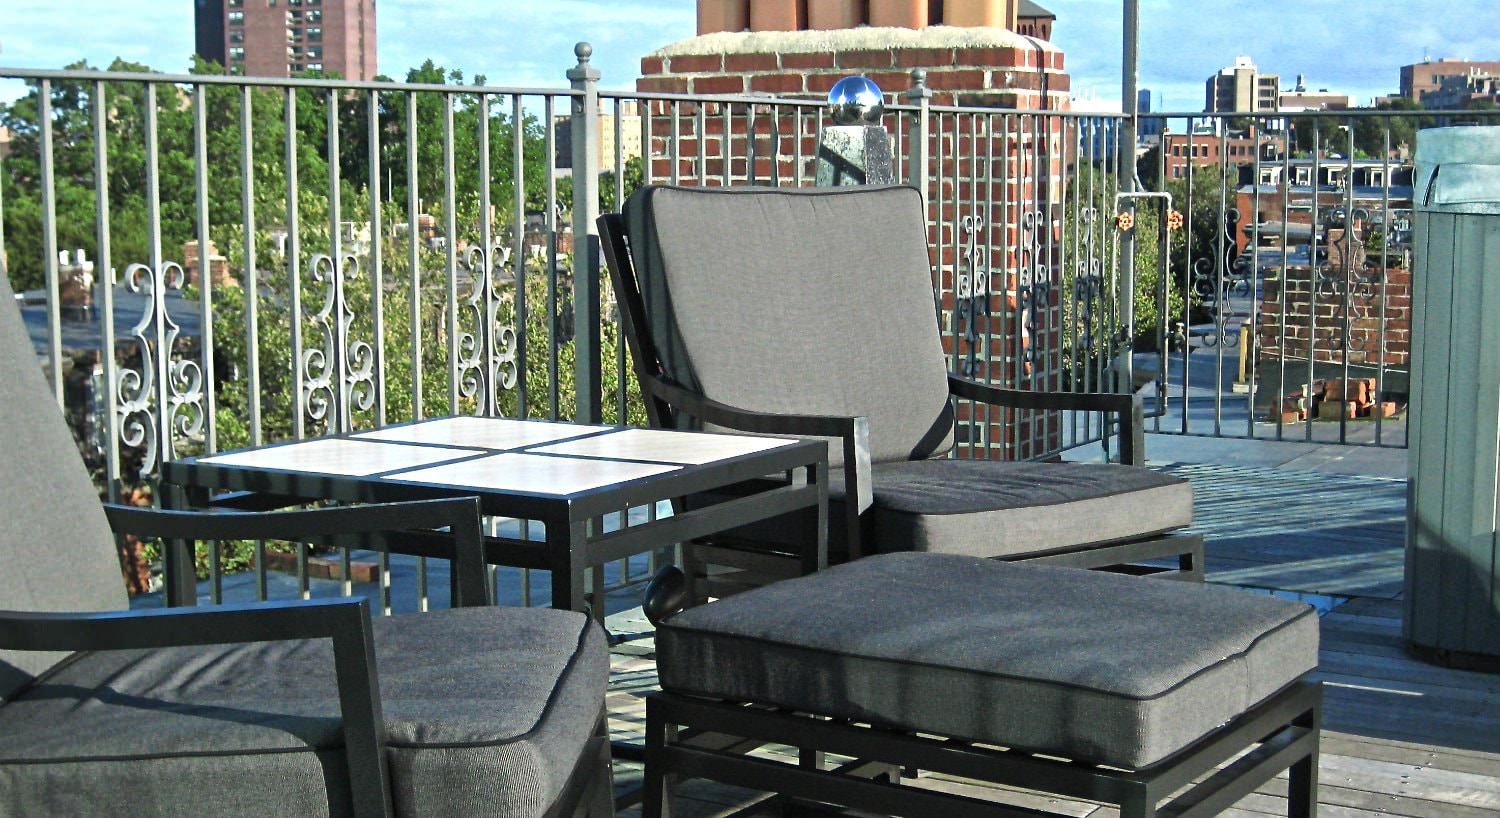 Rooftop terrace with gray and black furniture and gray scroll metal railing